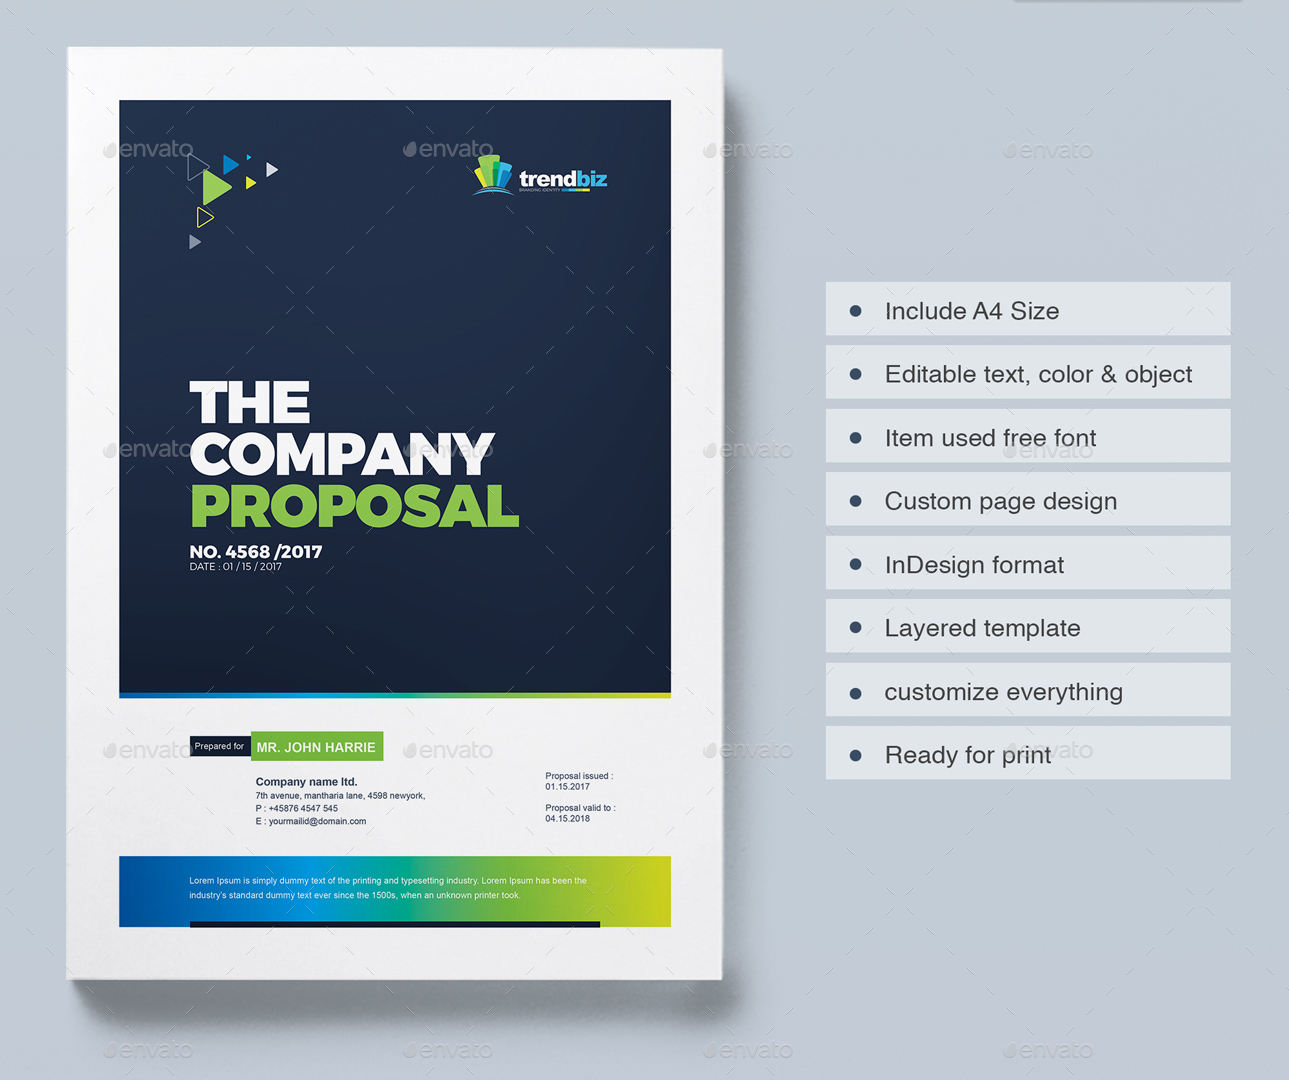 Proposal Template Design Project Proposal – Project Front Page Design in Word